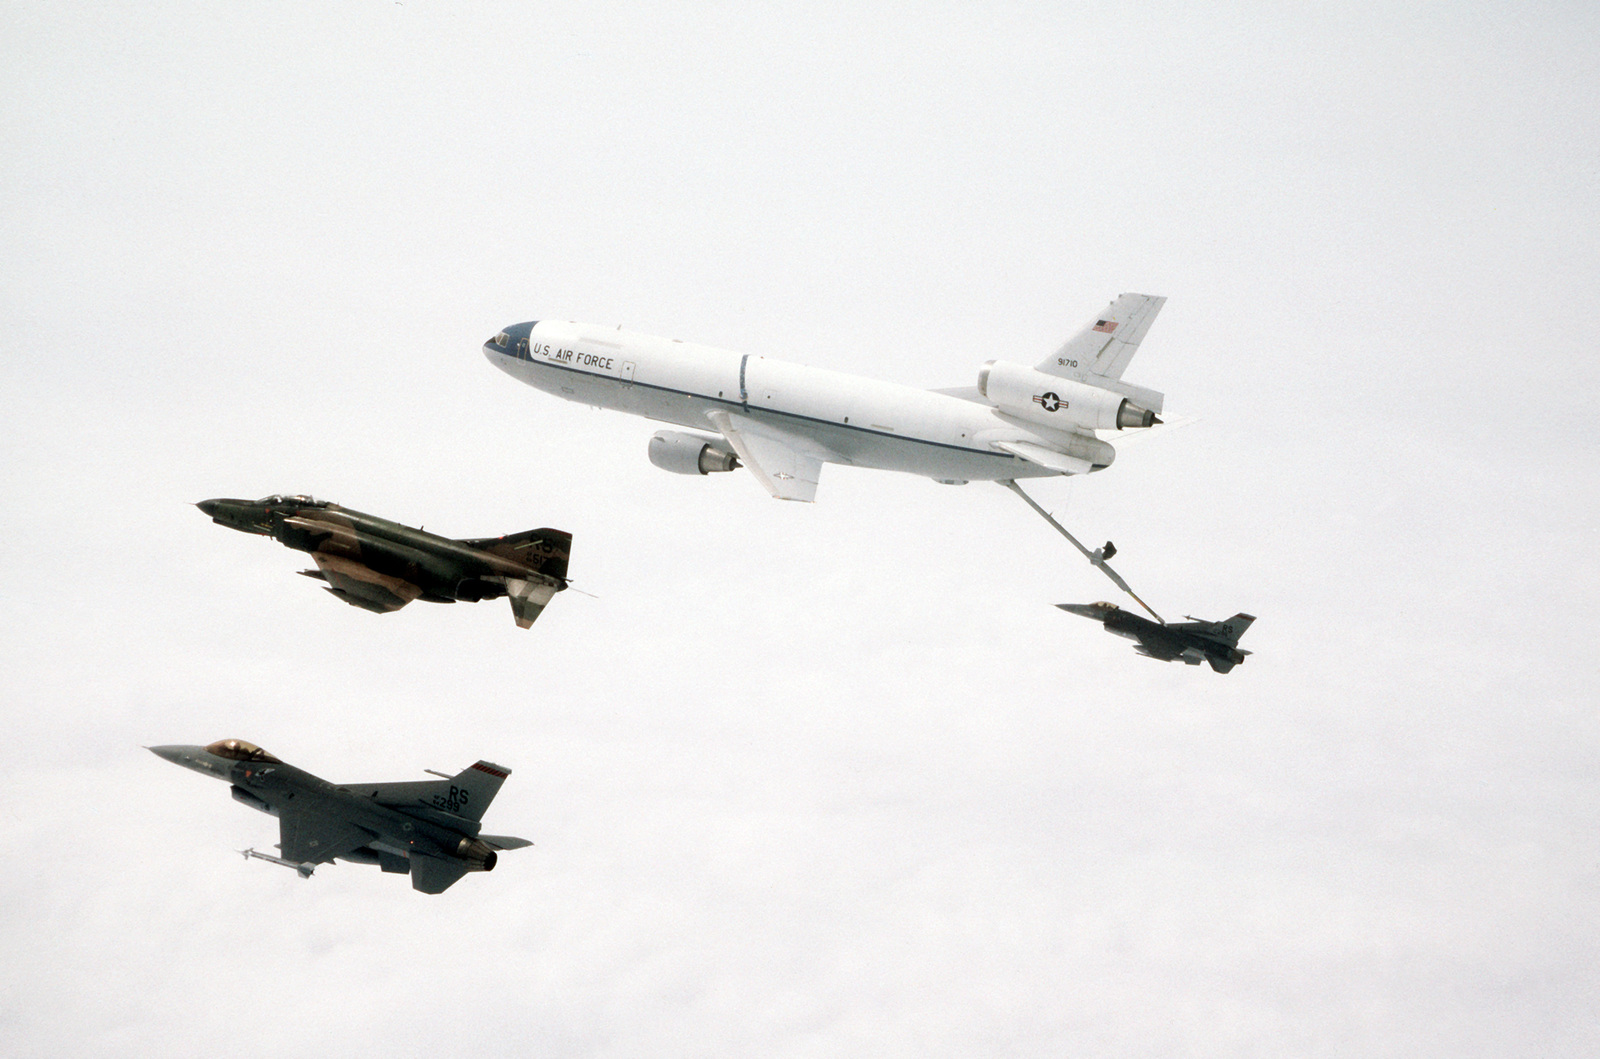 An F-16C Fighting Falcon and an F-4E Phantom II aircraft, both of the 526th Tactical Fighter Squadron (TFS) fly alongside as a KC-10A Extender aircraft refuels a 526th TFS F-15C. The F-4E aircraft of the 526th TFS are being replaced by the F-16C aircraft